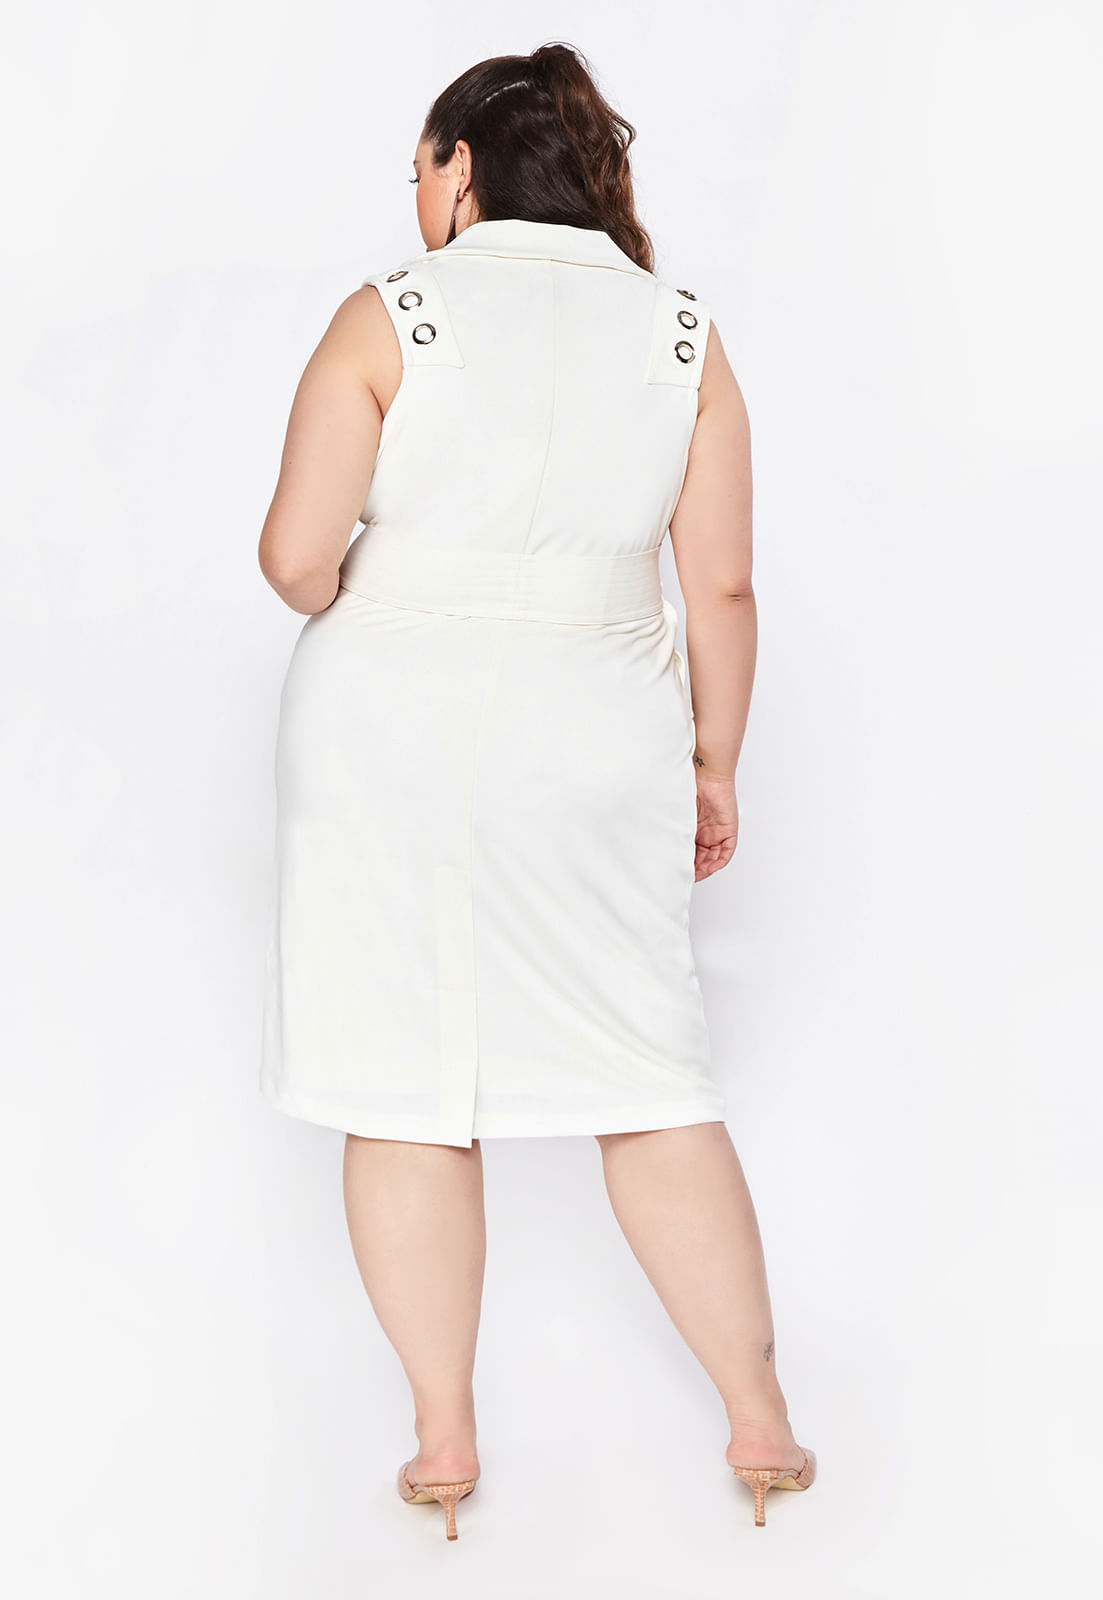 005_Vestido_Plus_Size_Liso_Off_White_6